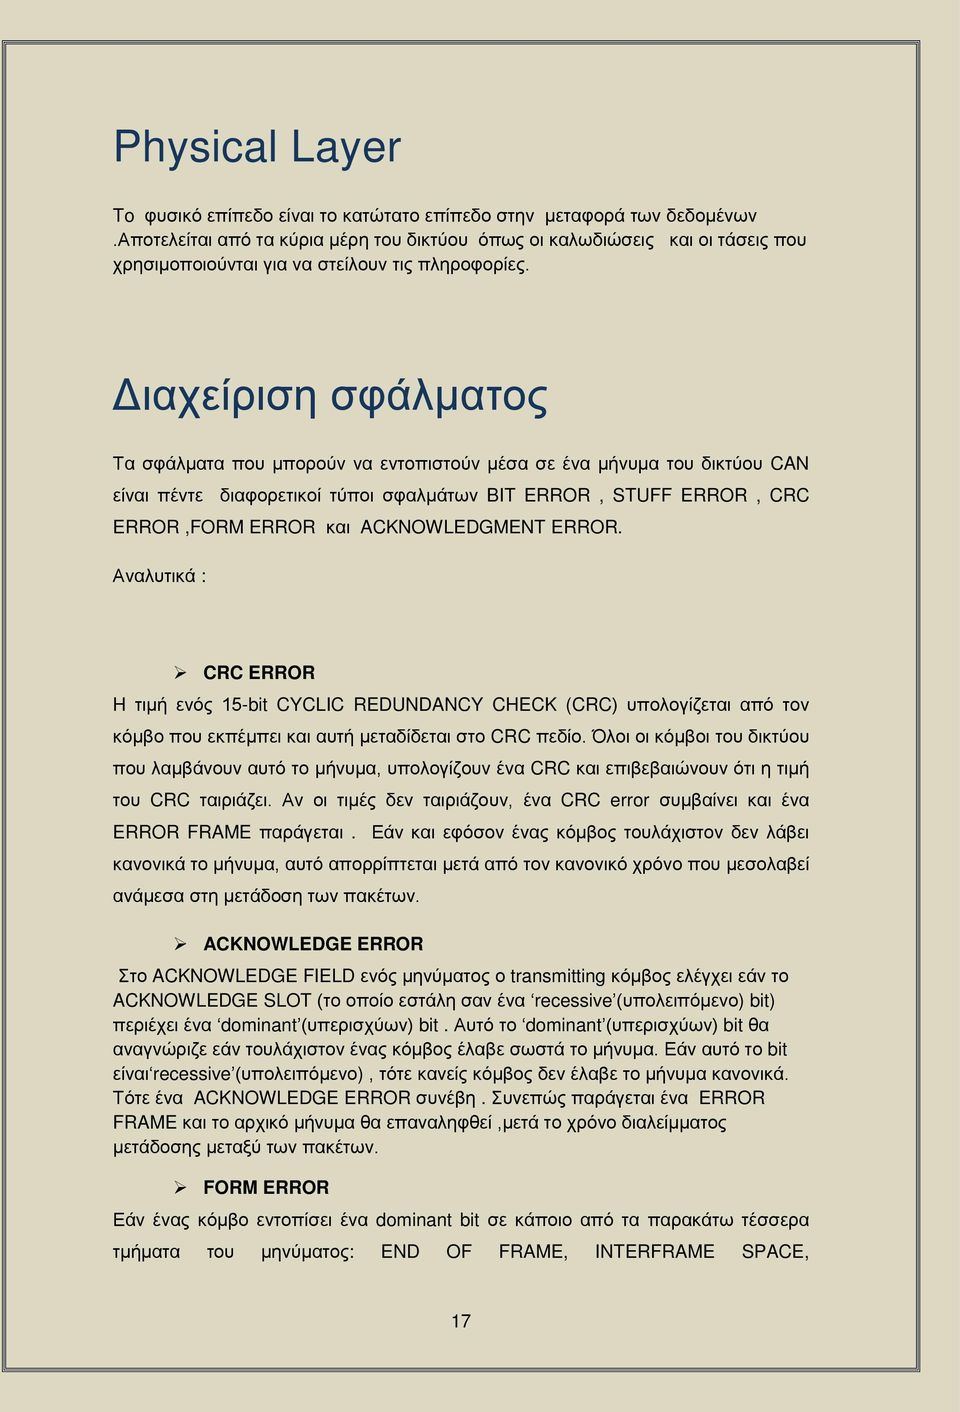 εαδν ACKNOWLEDGMENT ERROR.